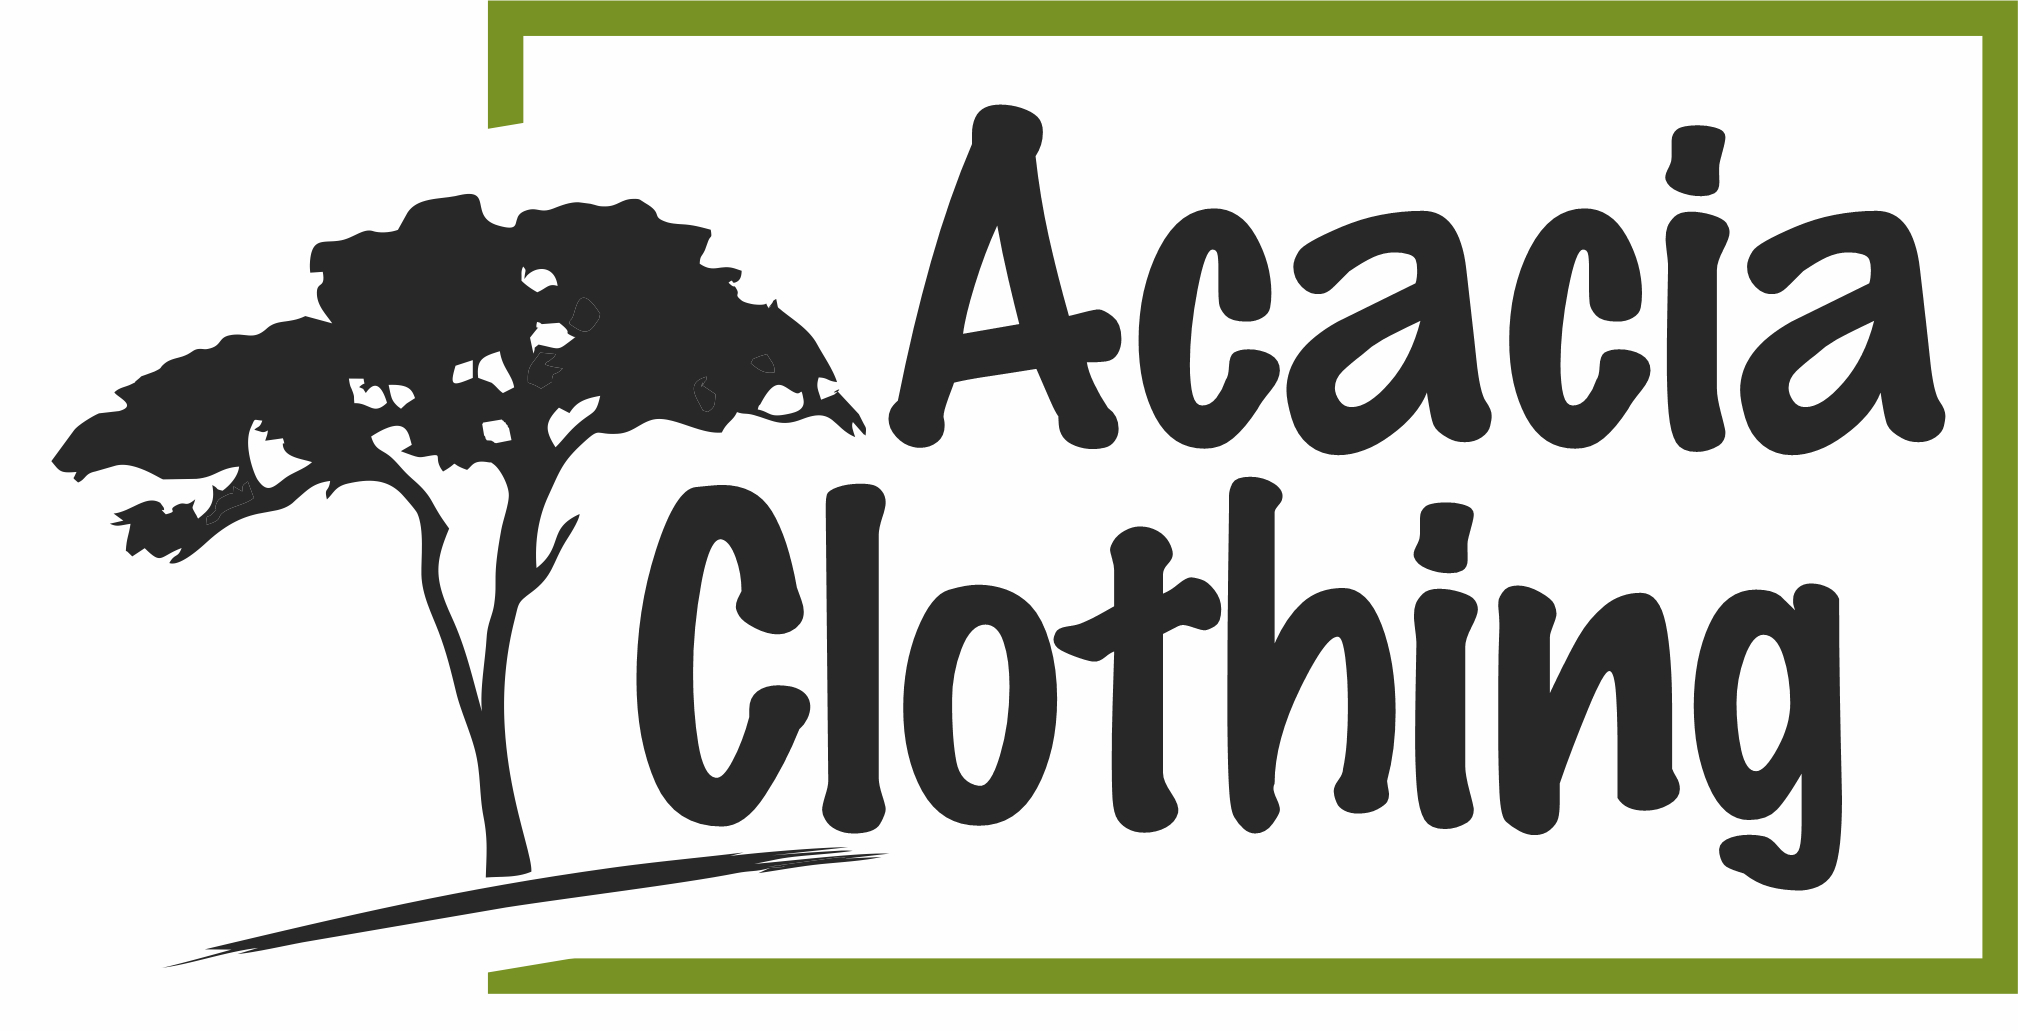 Acaciaclothing rezised6